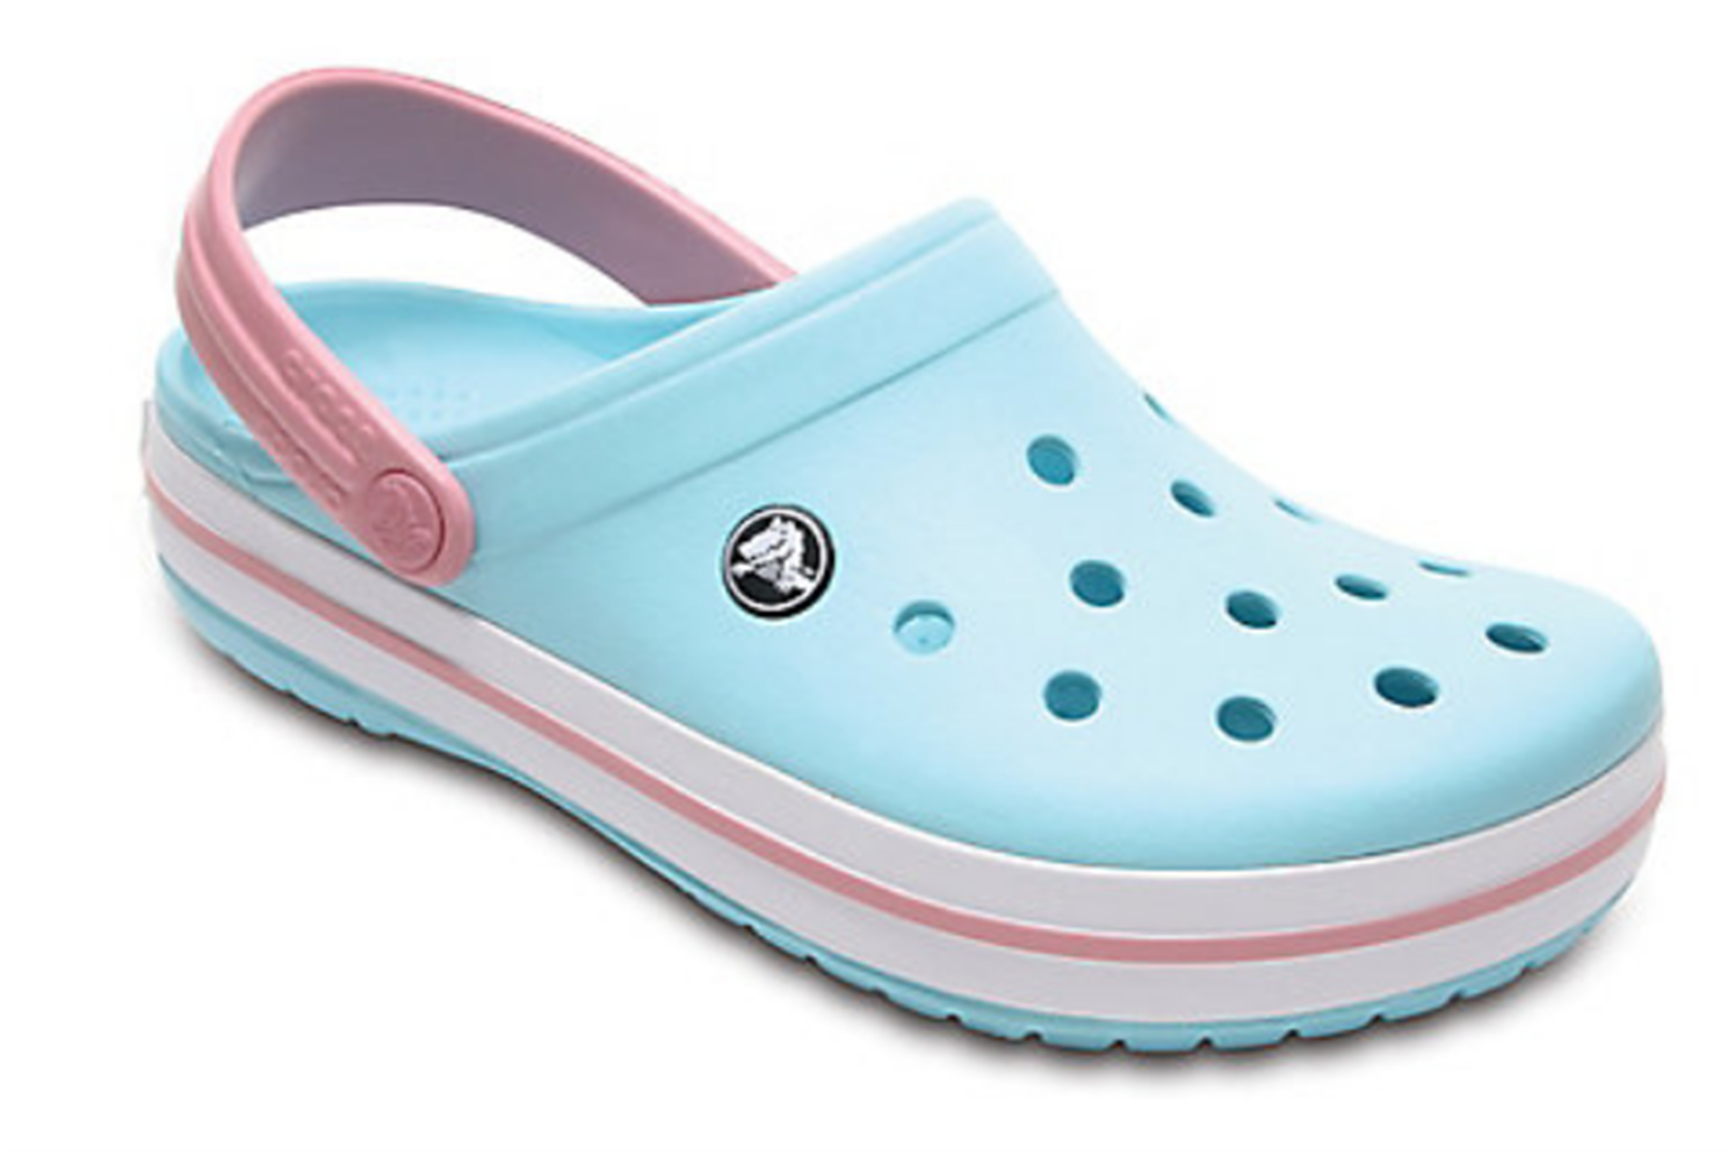 Croc's End Of The Year Sale Up To 60% Off – Crocband Clog Only $17.99, Reg $49.99!